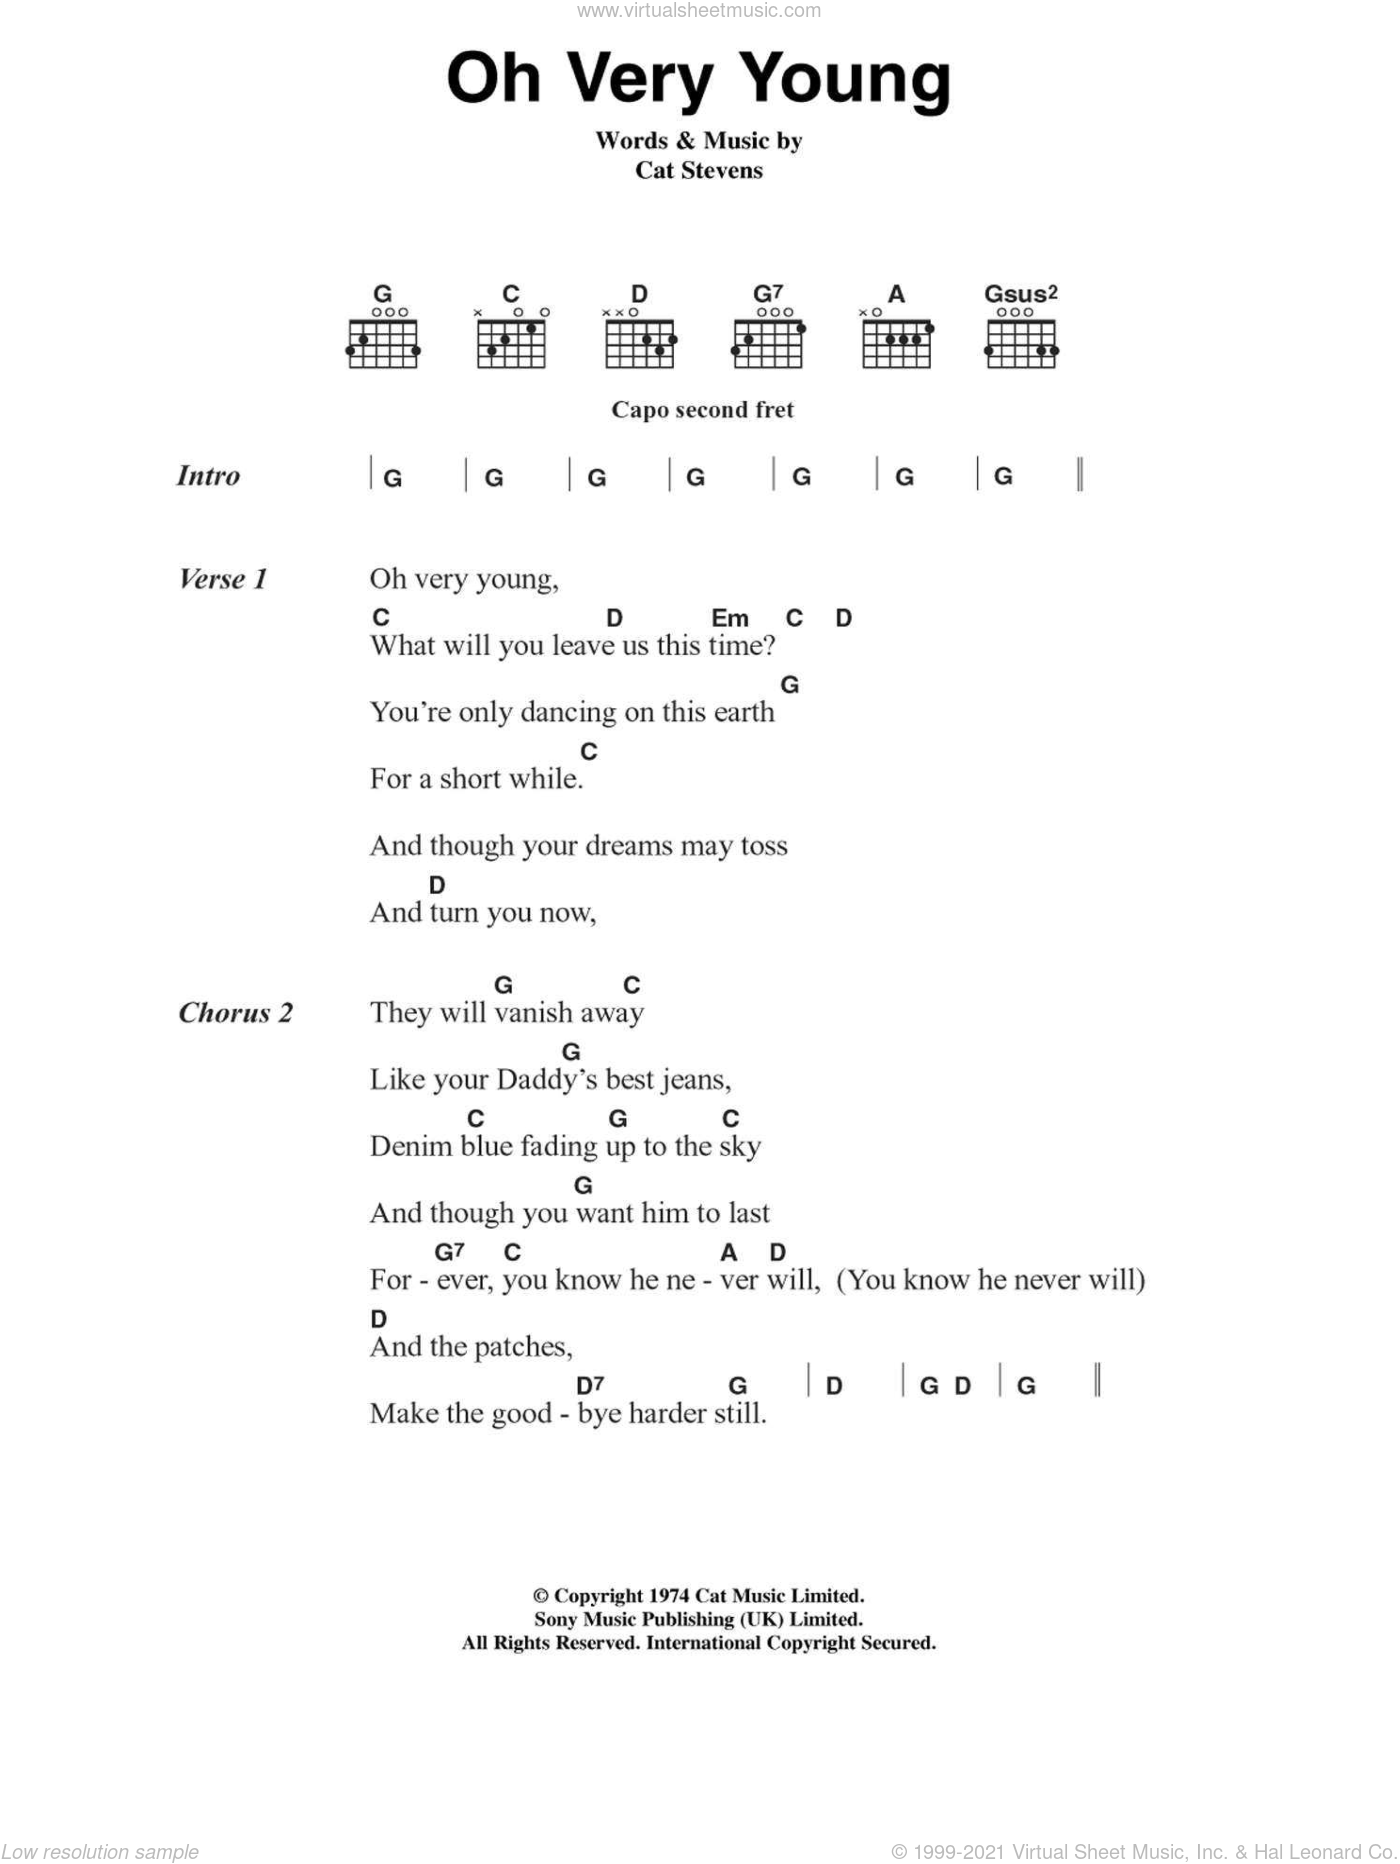 Oh Very Young sheet music for guitar (chords) by Cat Stevens. Score Image Preview.